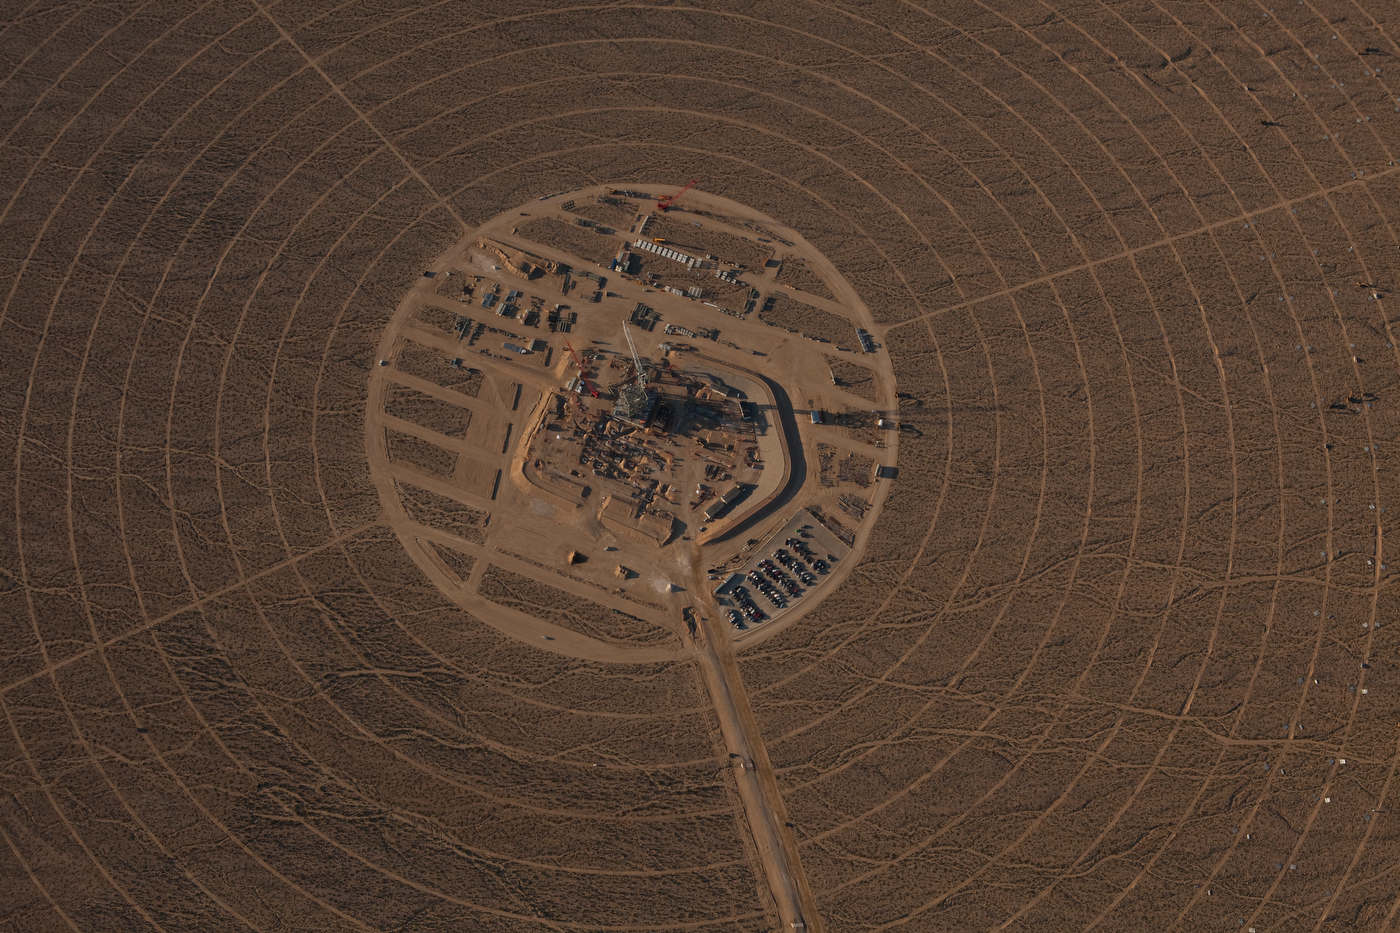 Aerial view of Ivanpah's Tower 1 during early construction.